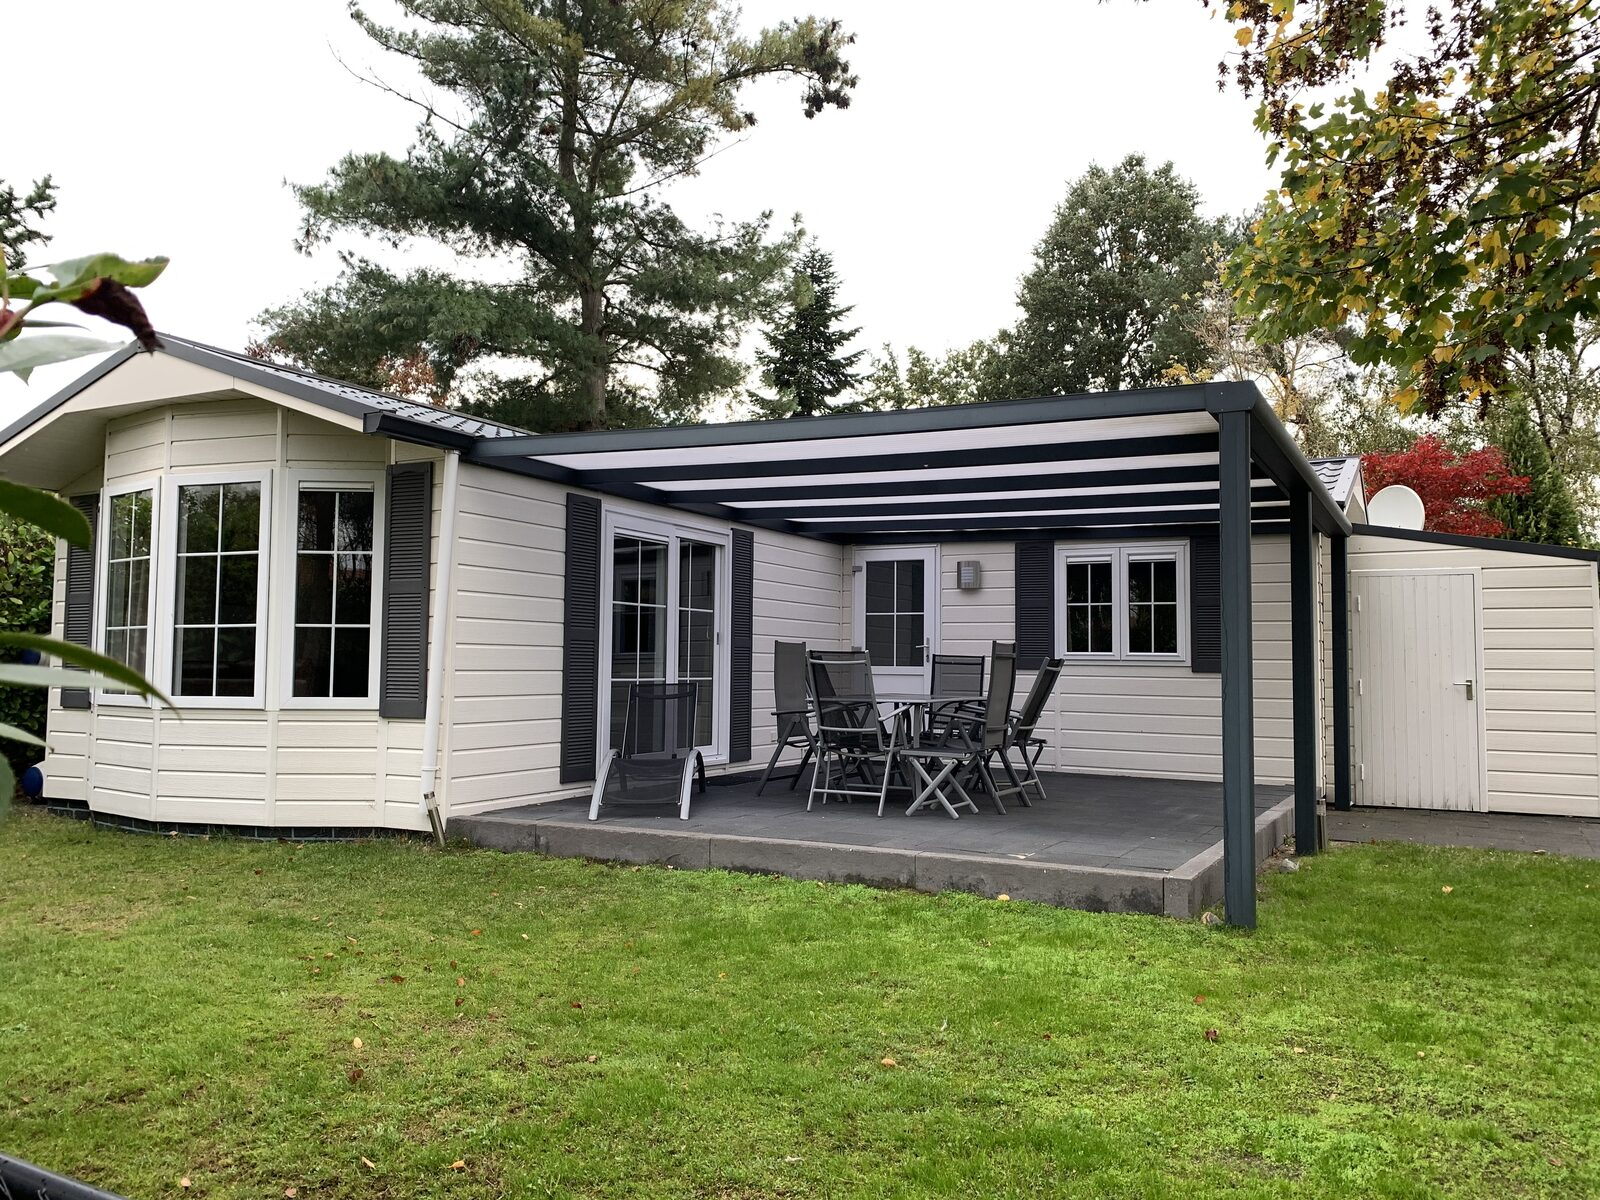 Luxe L-chalet